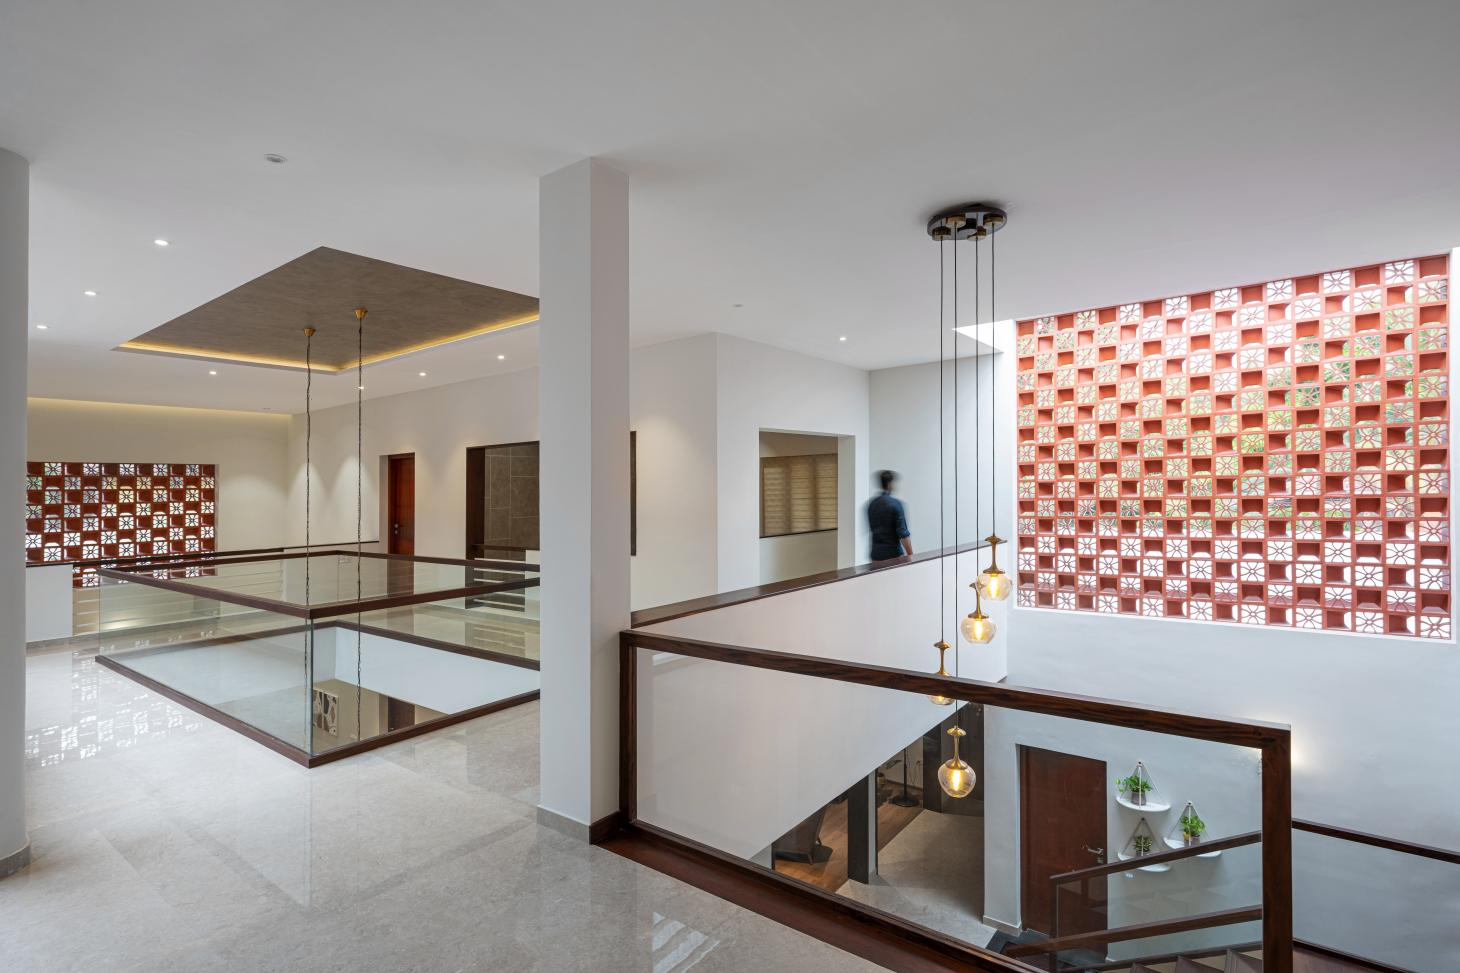 hero shot of the central circulation space with jaali screens at The Manjeri Residence in India